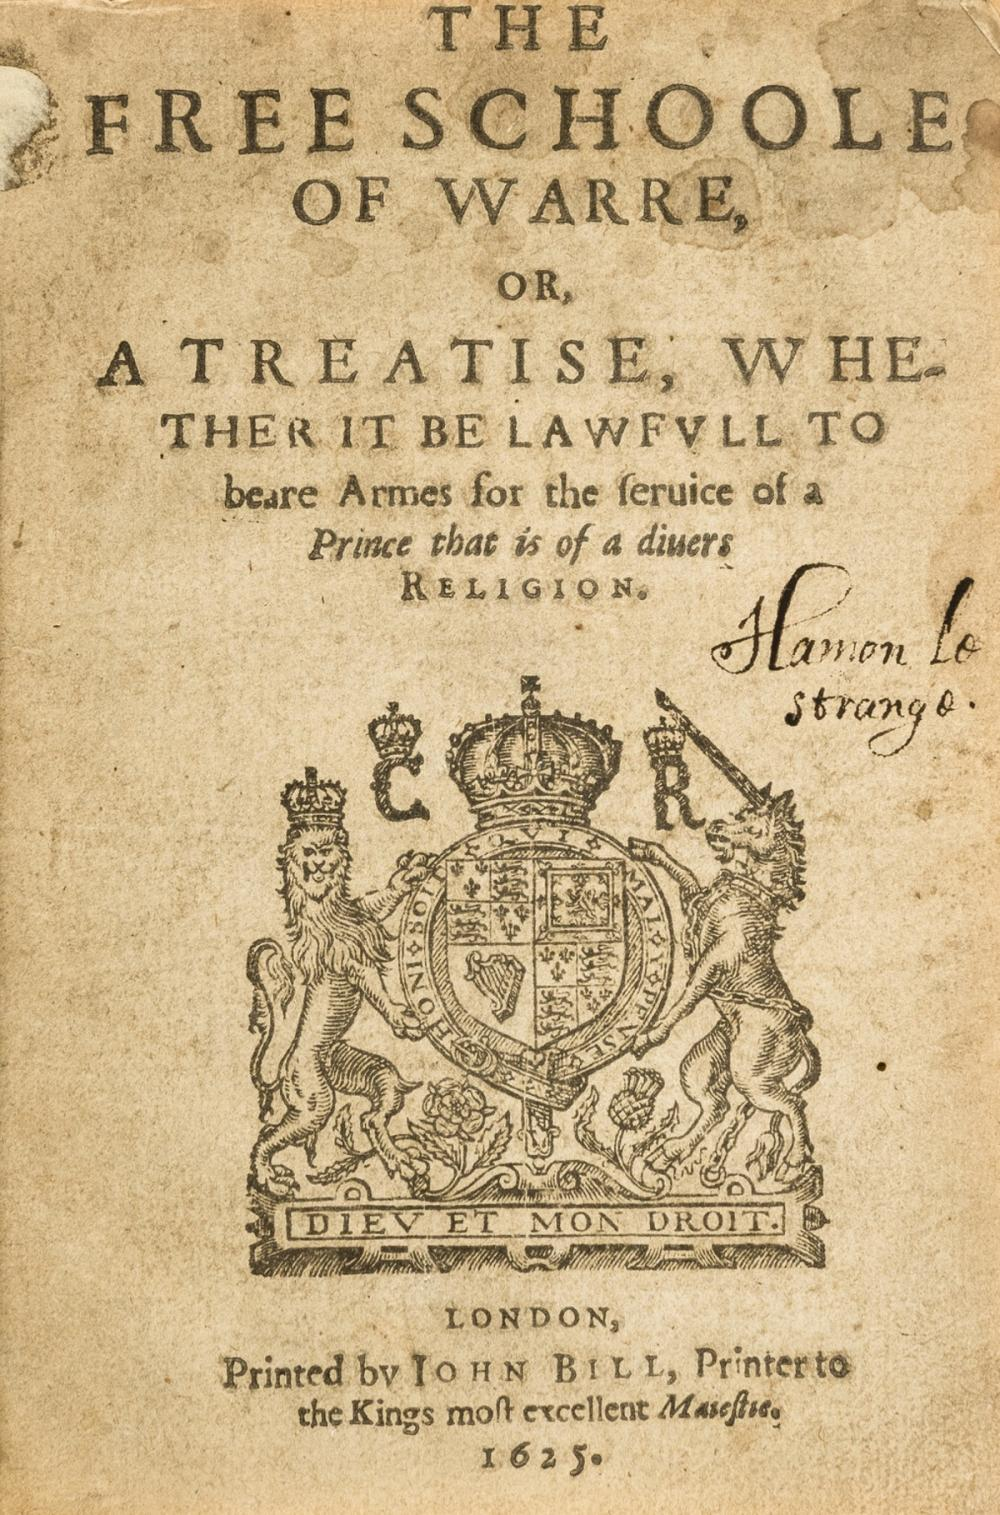 Sarpi (Paolo) The Free Schoole of Warre, or, a Treatise, whether it be lawfull to beare armes for the service of a Prince that is of a divers religion, first edition in English, 1625.